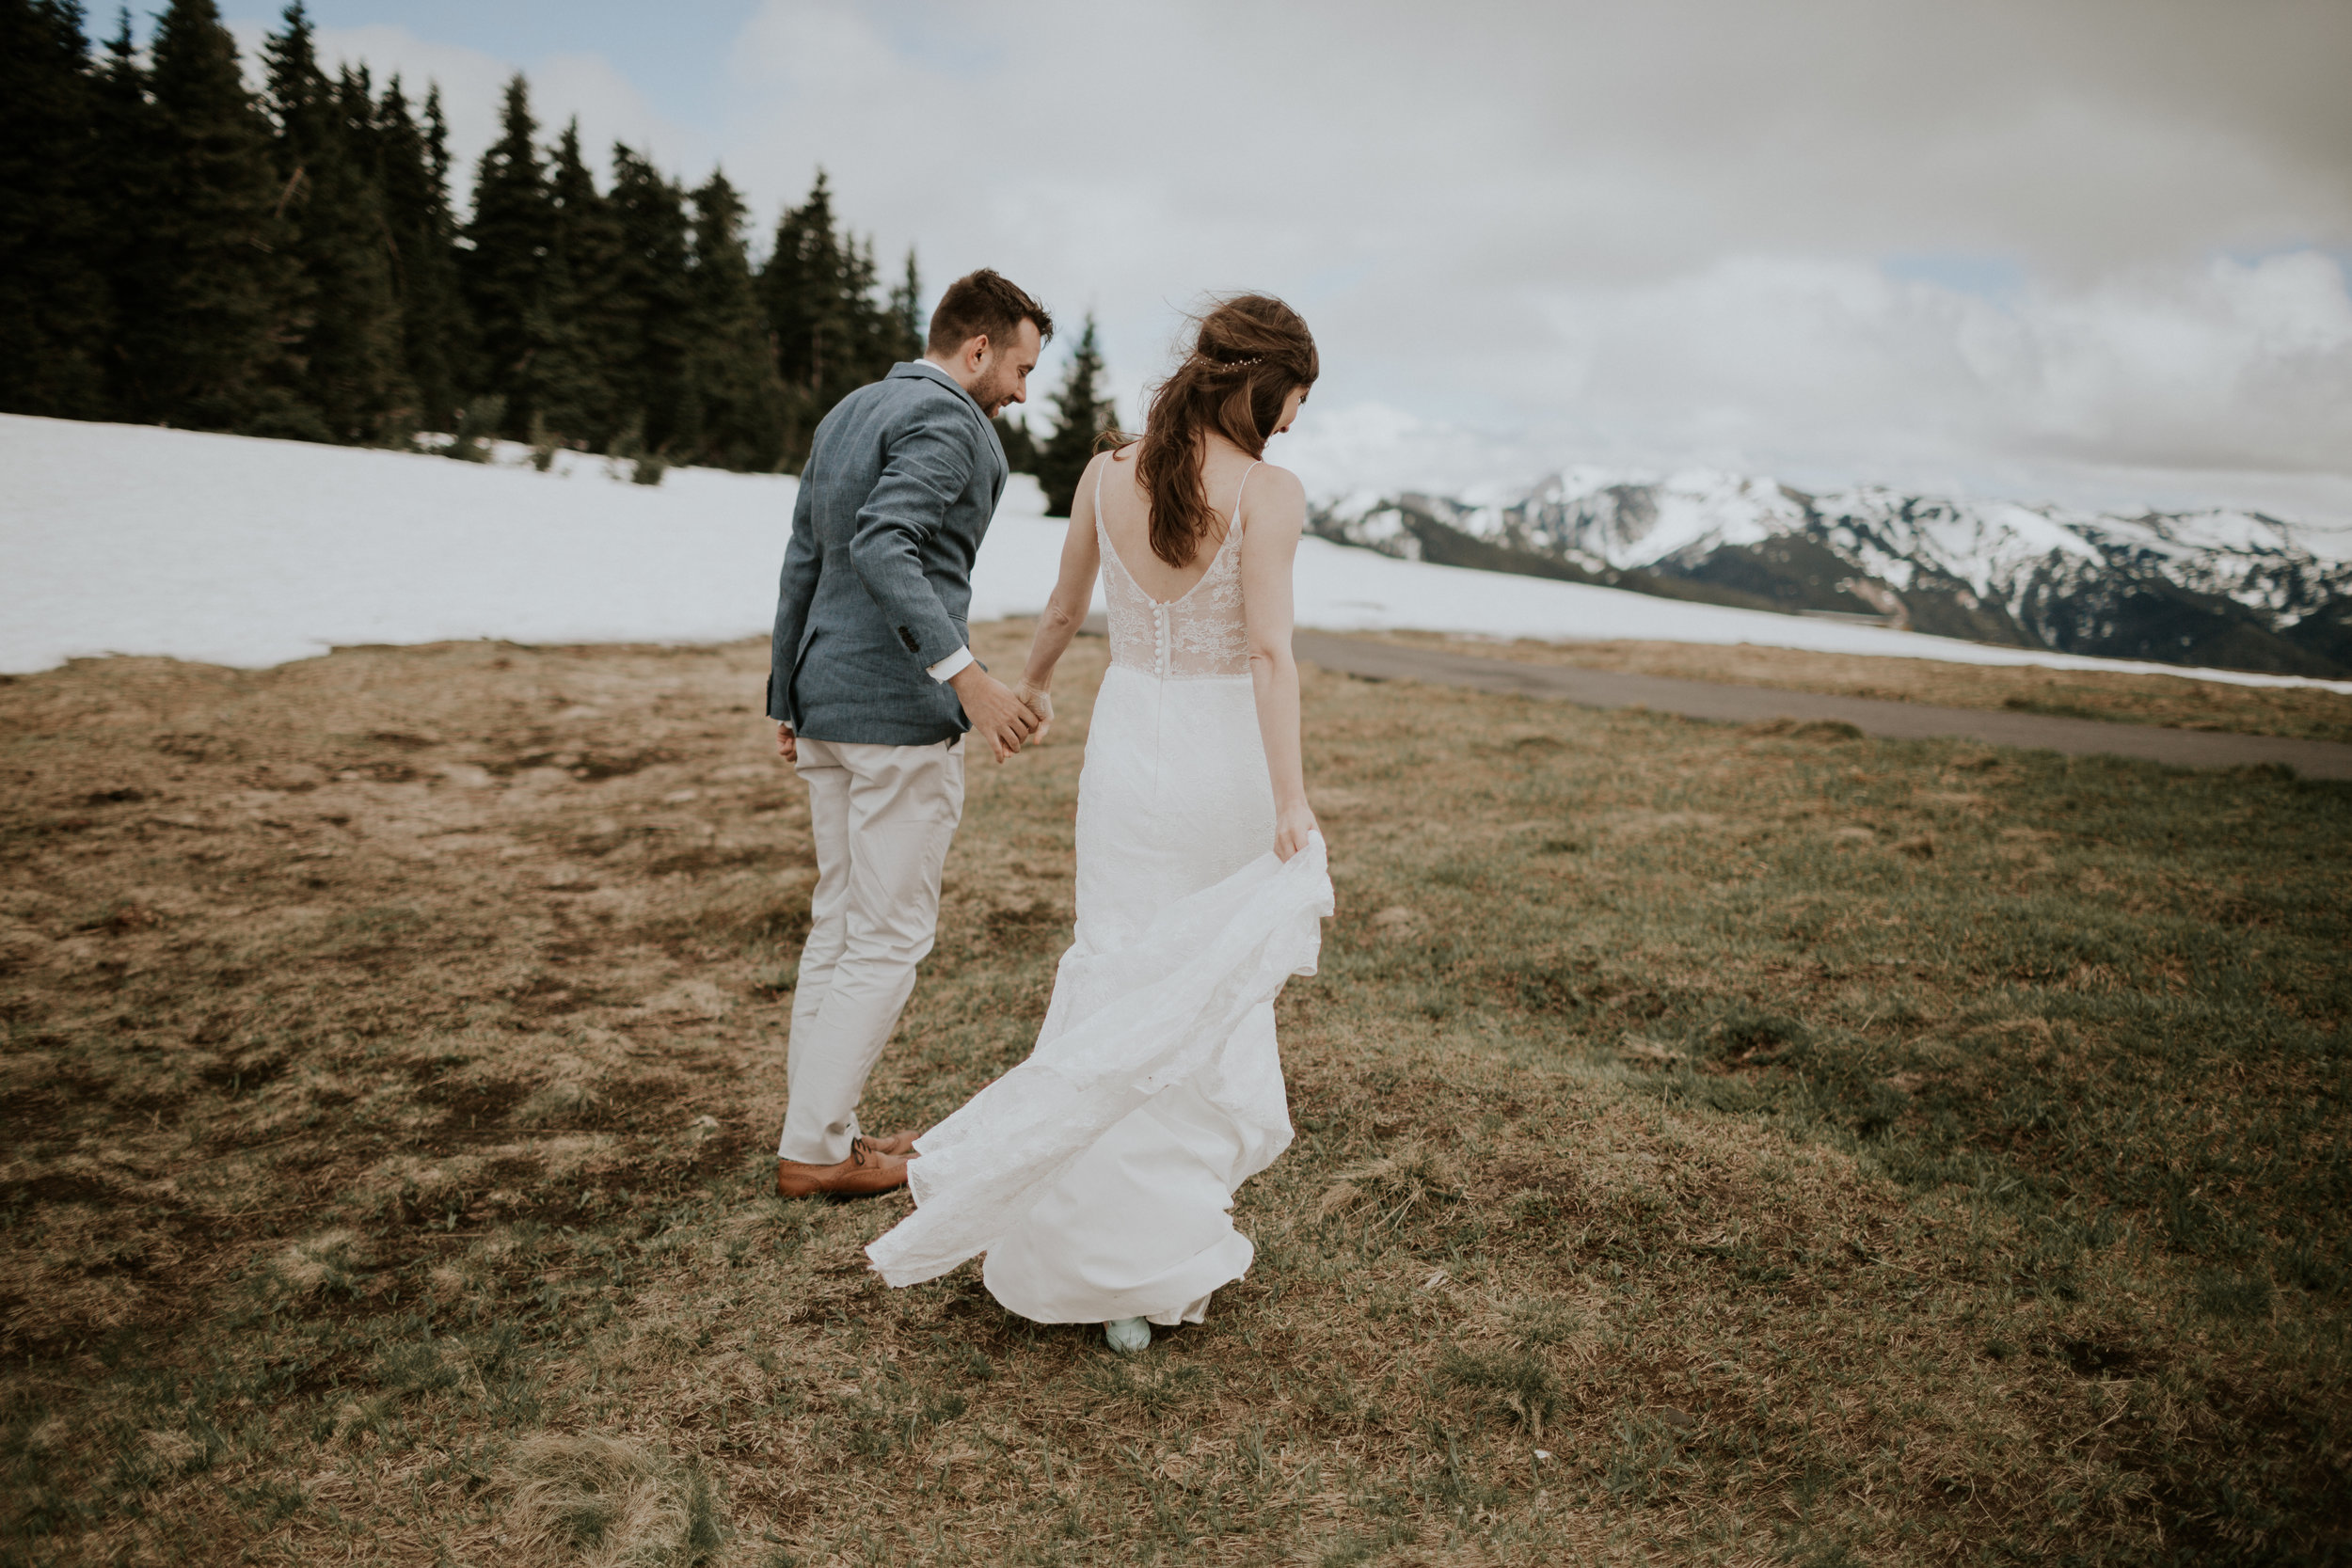 PNW-elopement-wedding-engagement-olympic national park-port angeles-hurricane ridge-lake crescent-kayla dawn photography- photographer-photography-kayladawnphoto-190.jpg